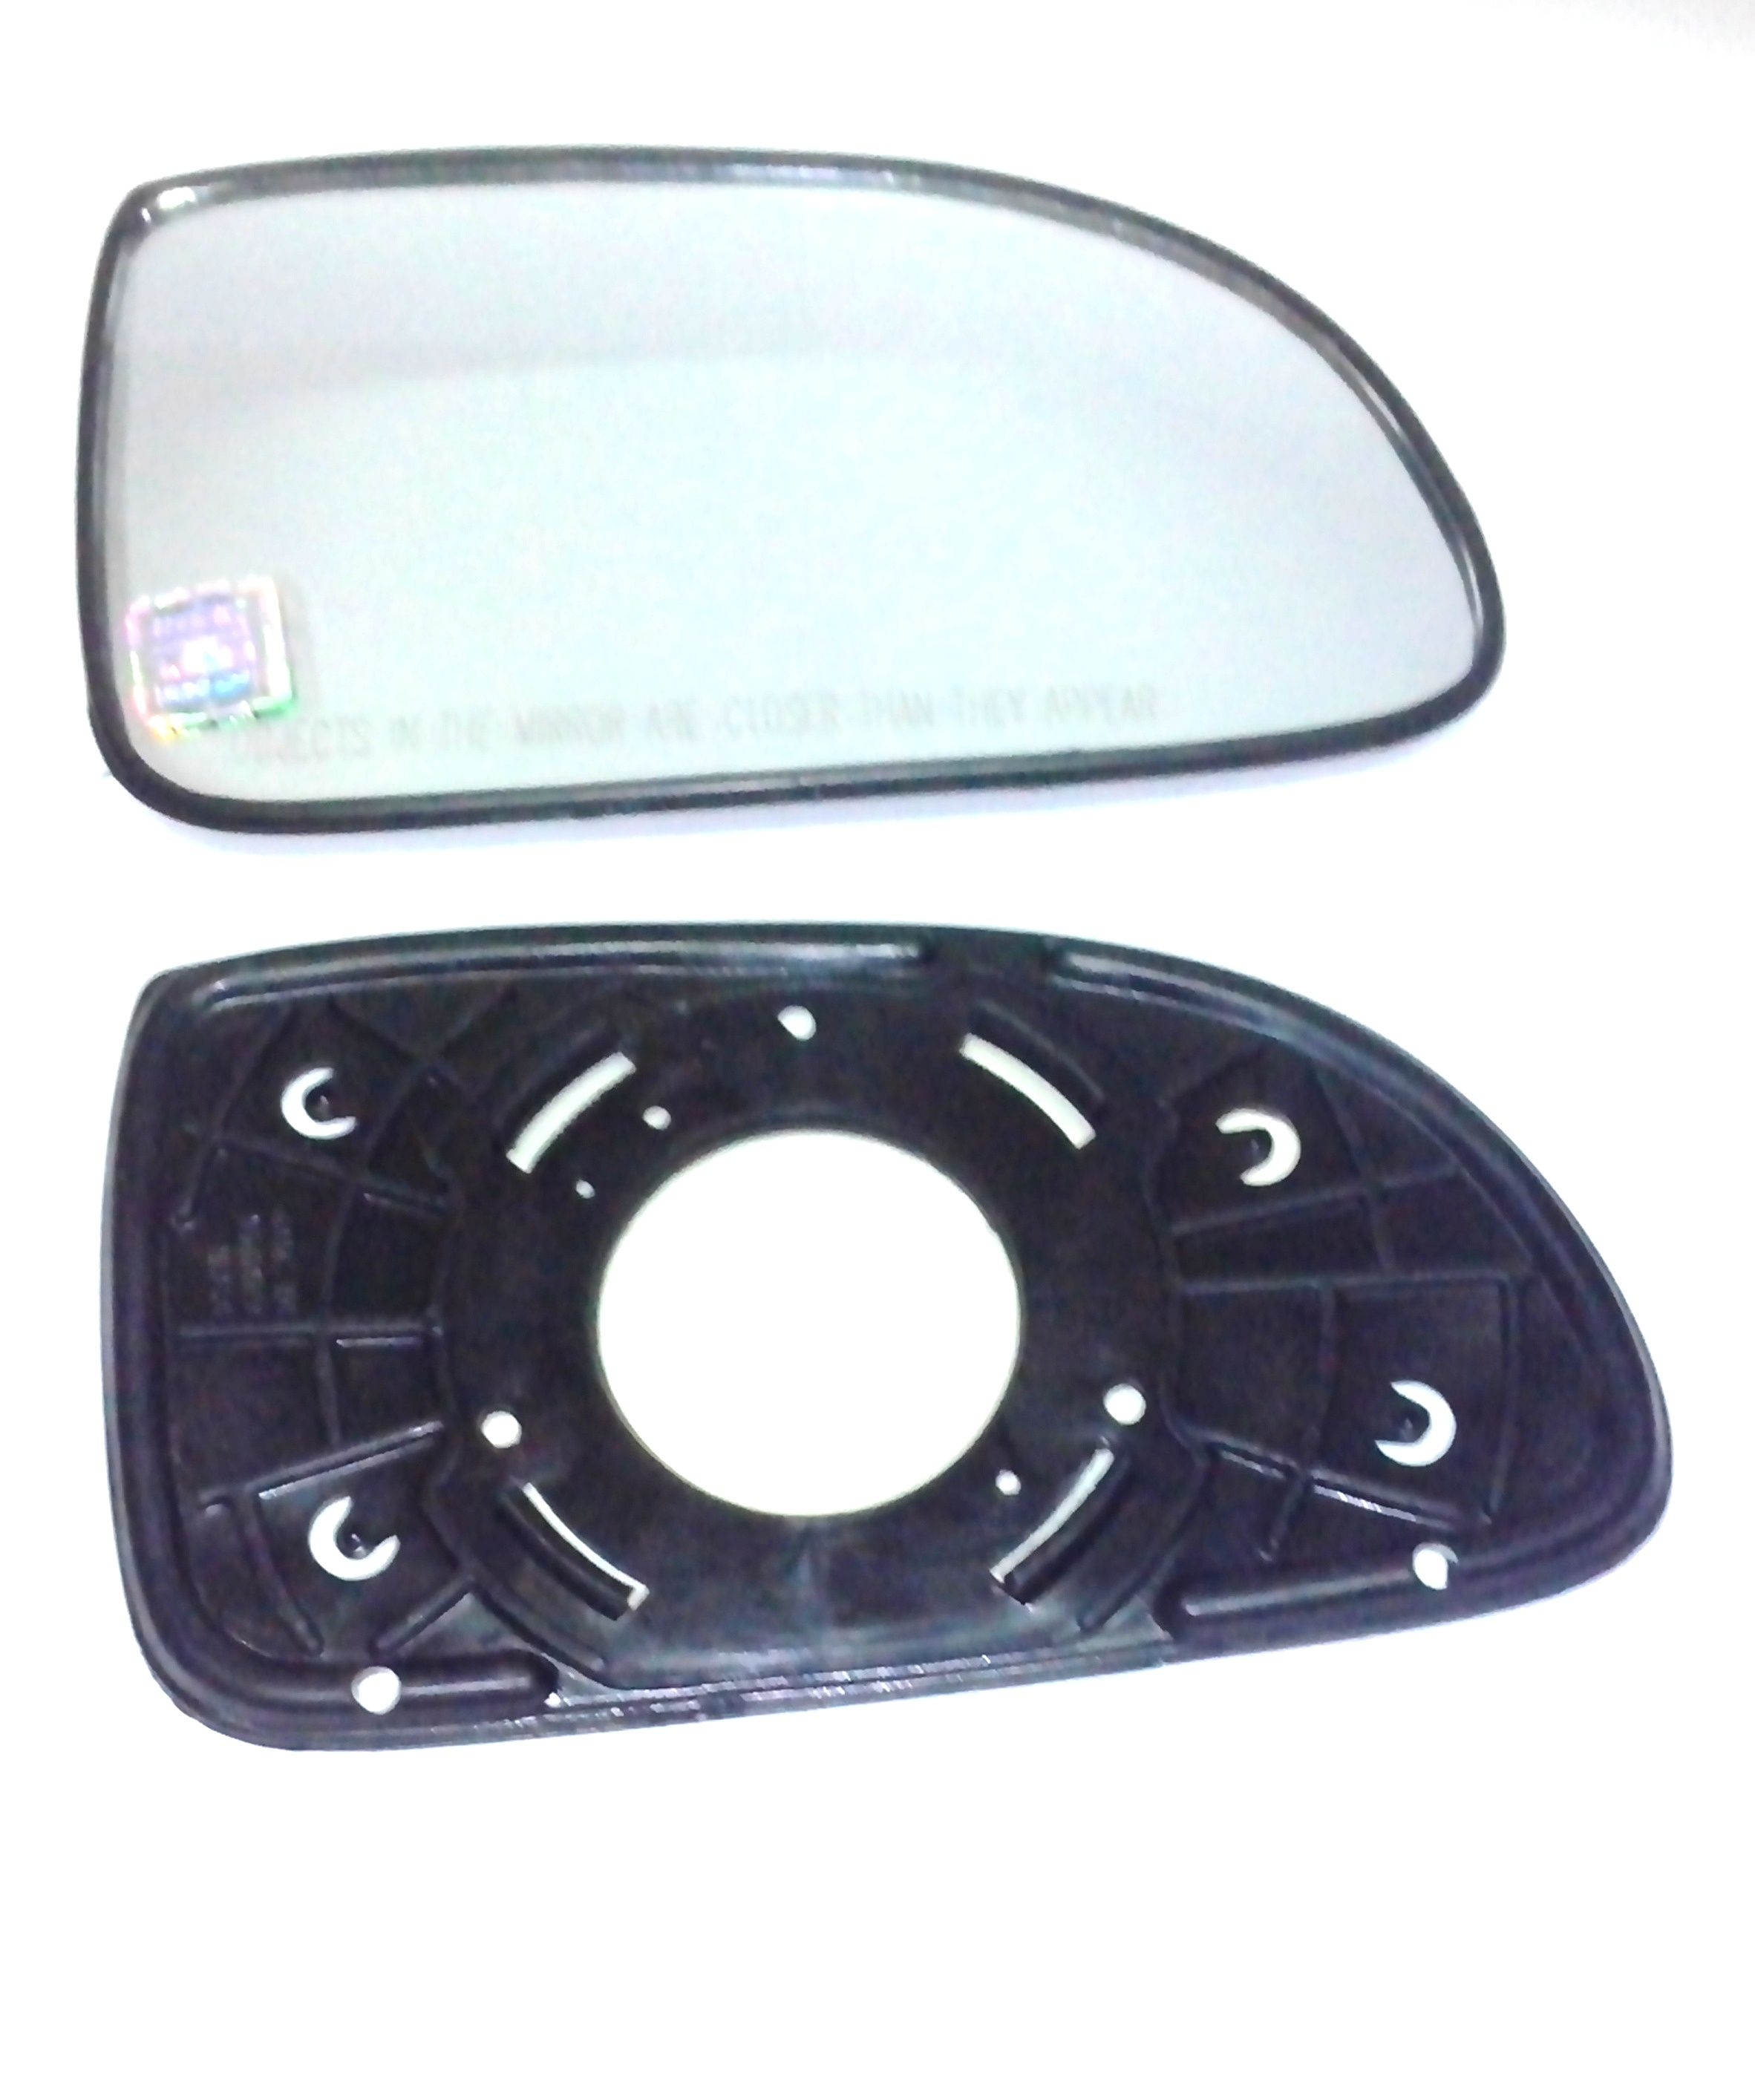 MANTRA-CONVEX MIRROR PLATES (SUB MIRROR PLATES) FOR MARUTI ERTIGA LEFT SIDE